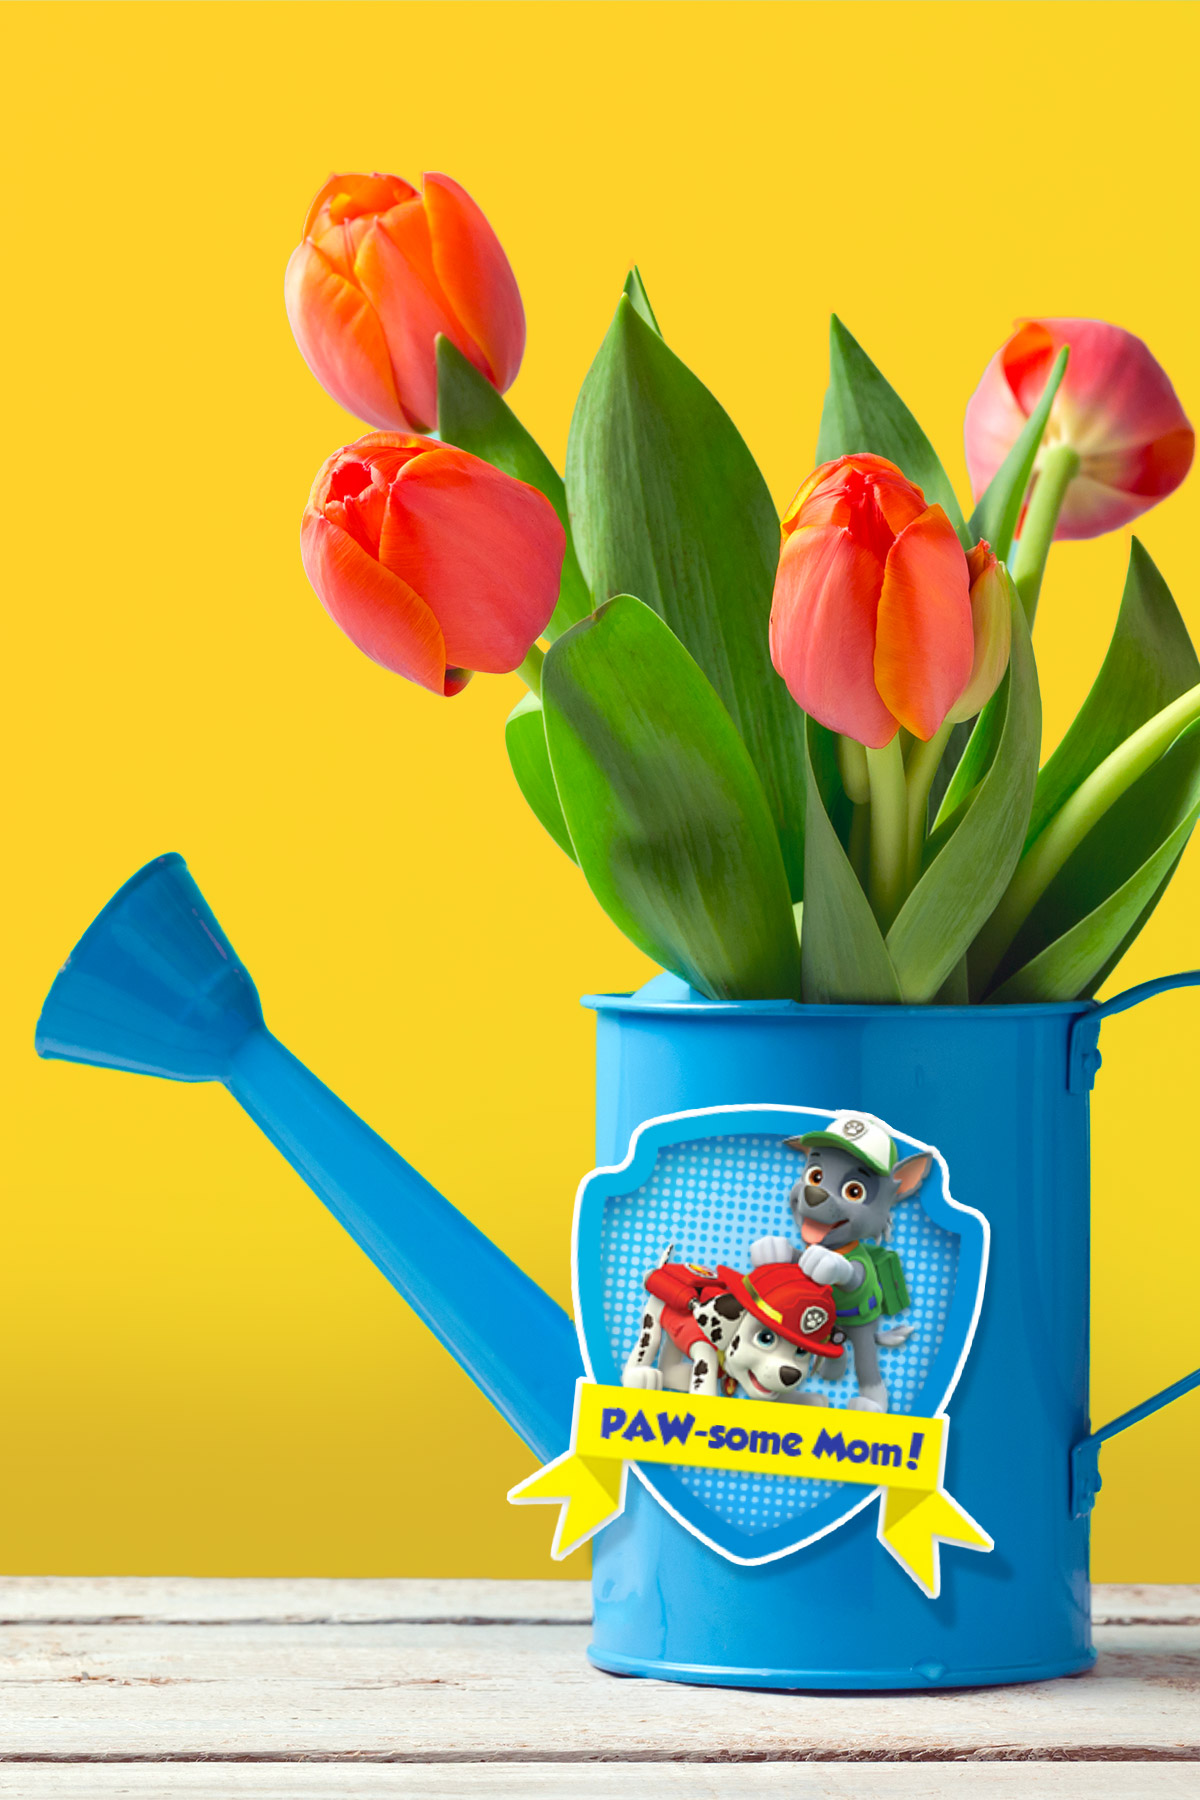 PAW Patrol Mother\'s Day Stickers | Nickelodeon Parents